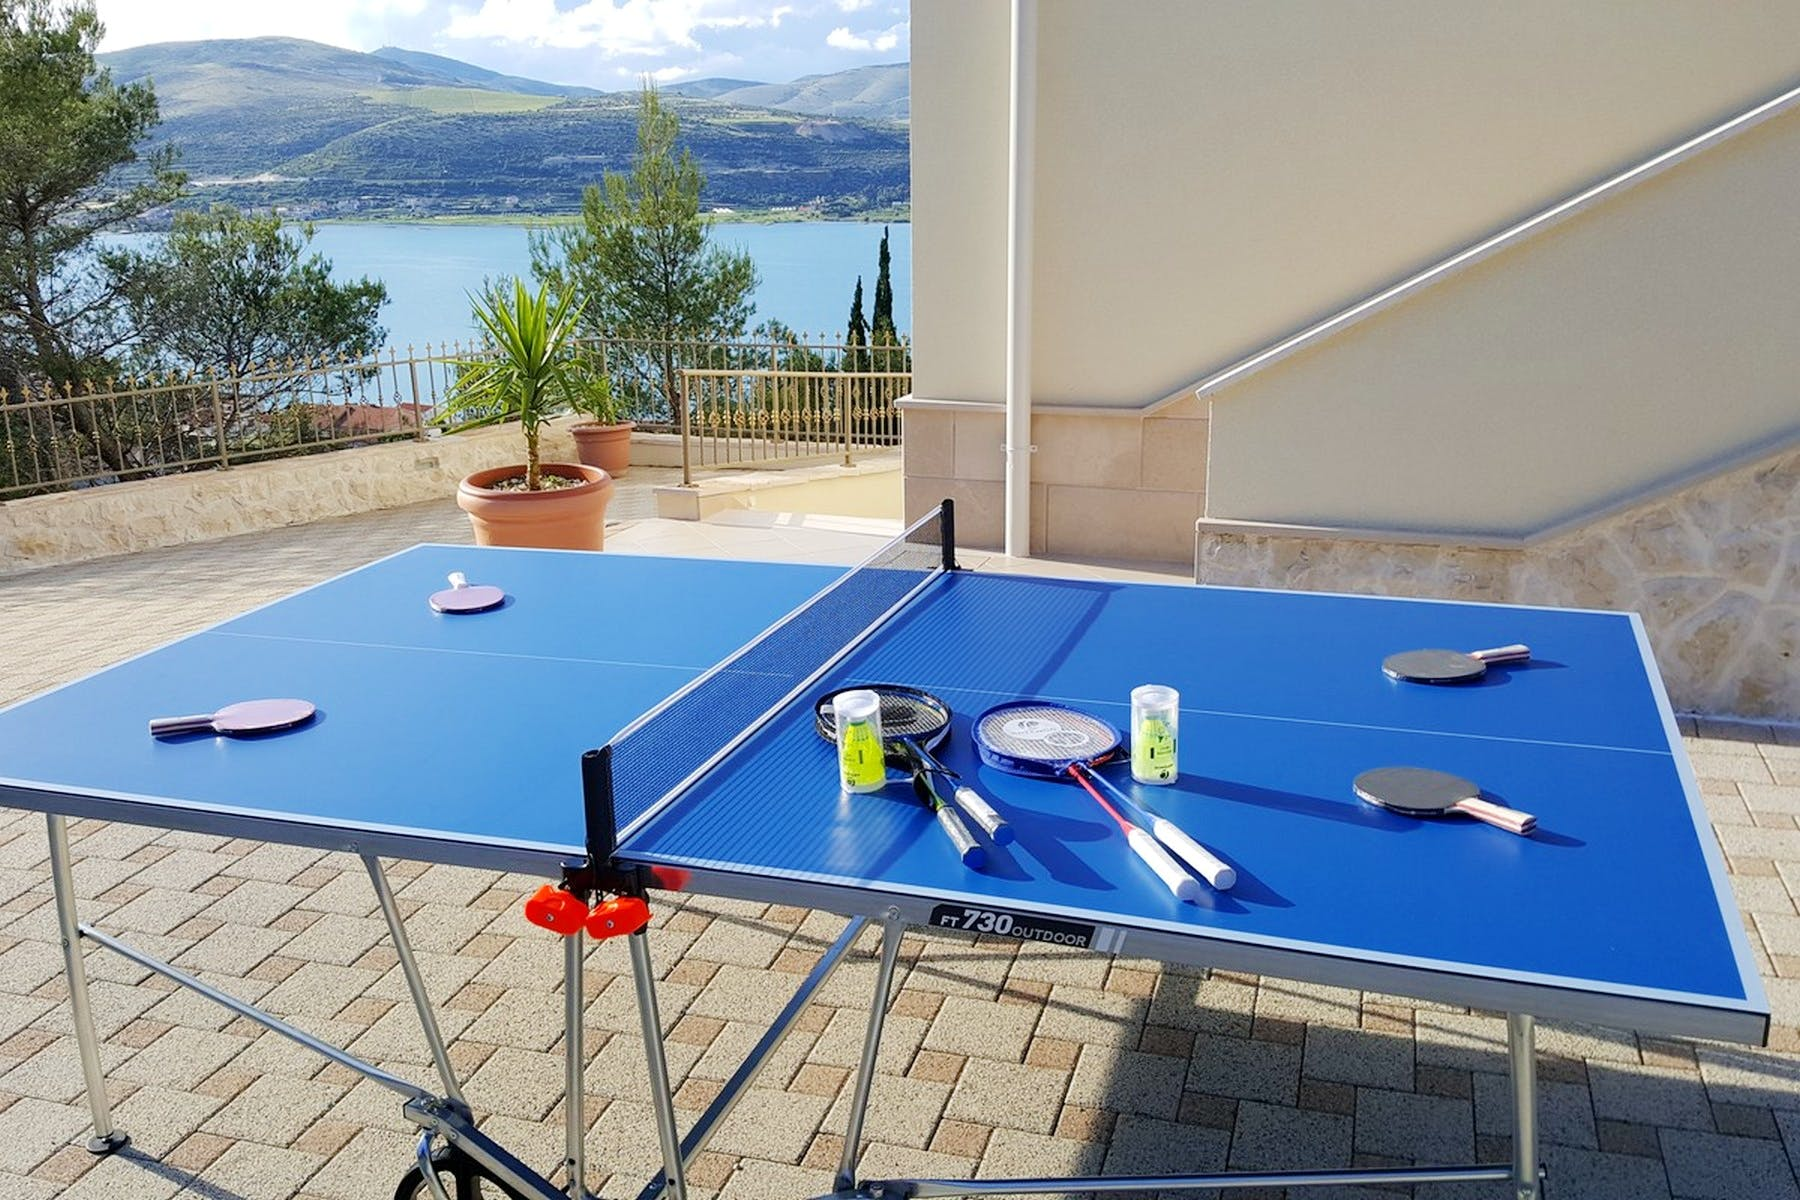 Outdoor table-tennis